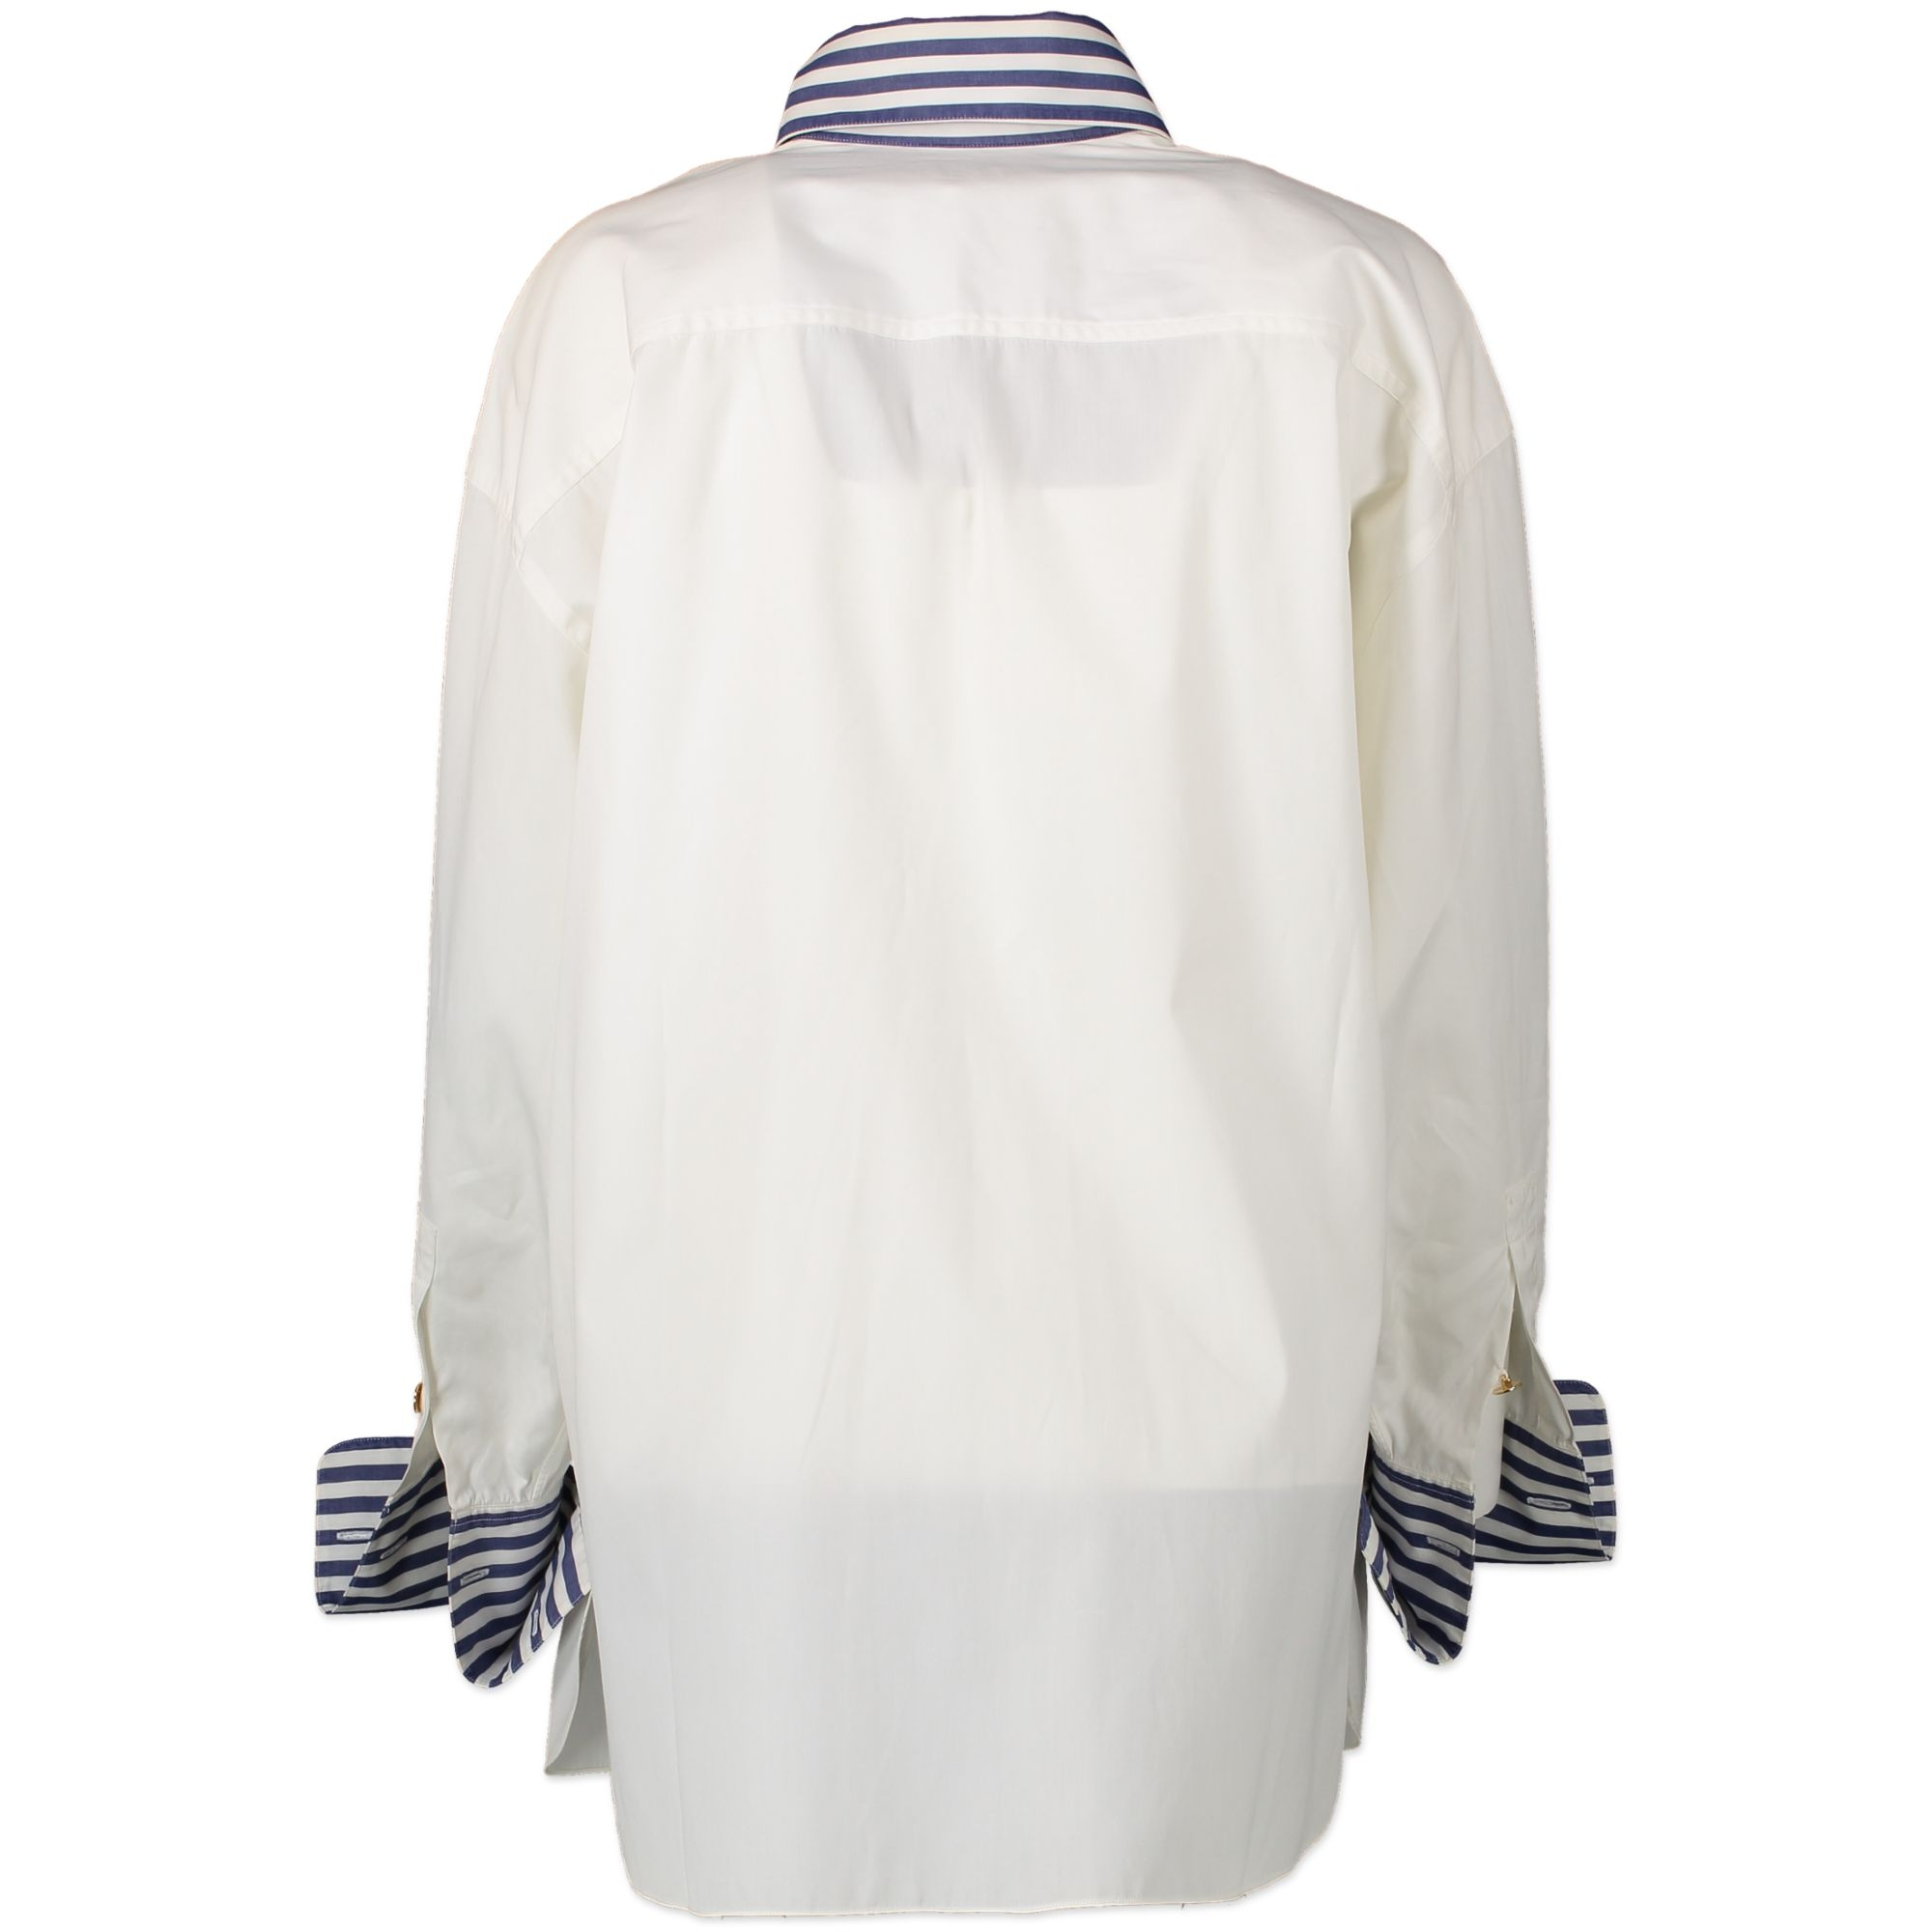 Chanel White Cotton Nautical-Inspired Button-Down Shirt for sale